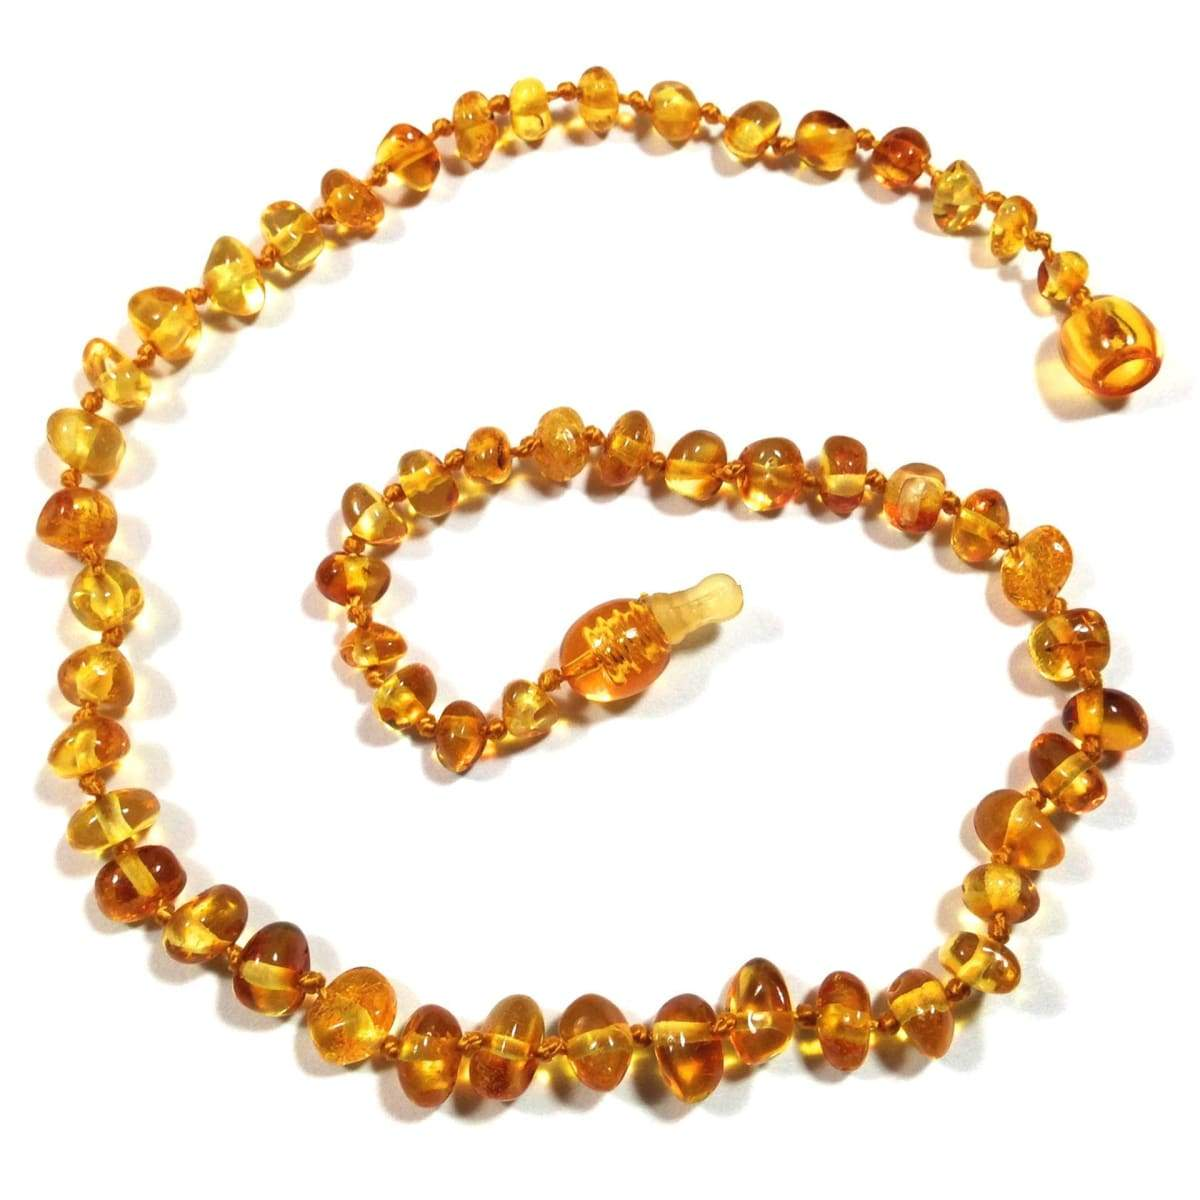 Baltic Amber Honey For Kids - 12 Necklace - Pop Clasp - Baltic Amber Jewelry